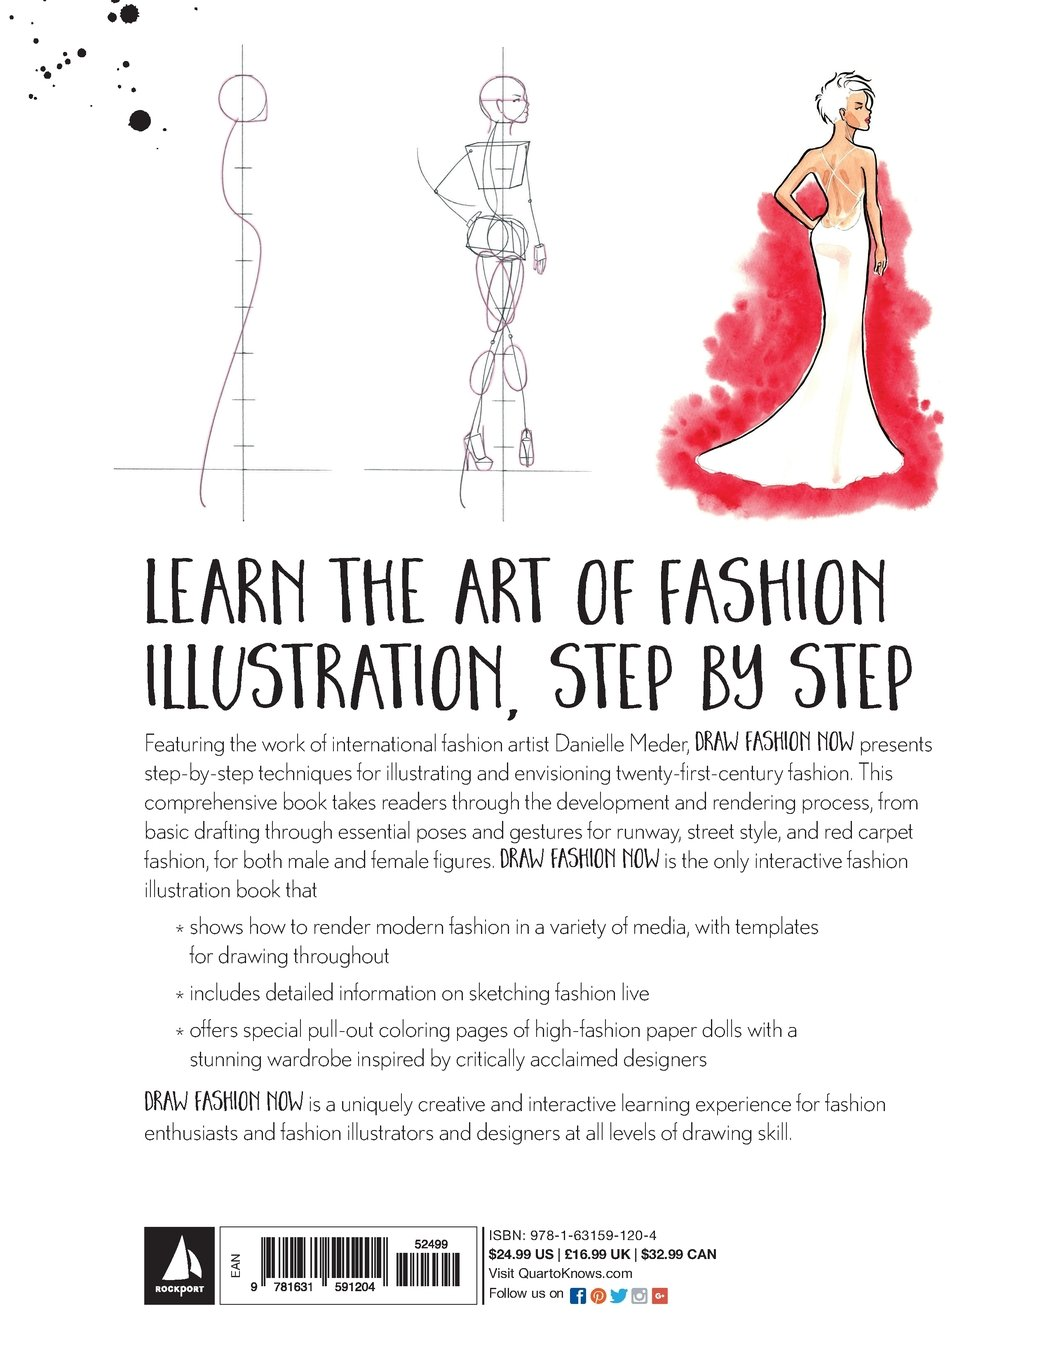 Draw Fashion Now Techniques Inspiration And Ideas For Illustrating And Imagining Your Designs With Fashion Paper Dolls And A Customizable Designer Inspired Wardrobe Meder Danielle 9781631591204 Amazon Com Books